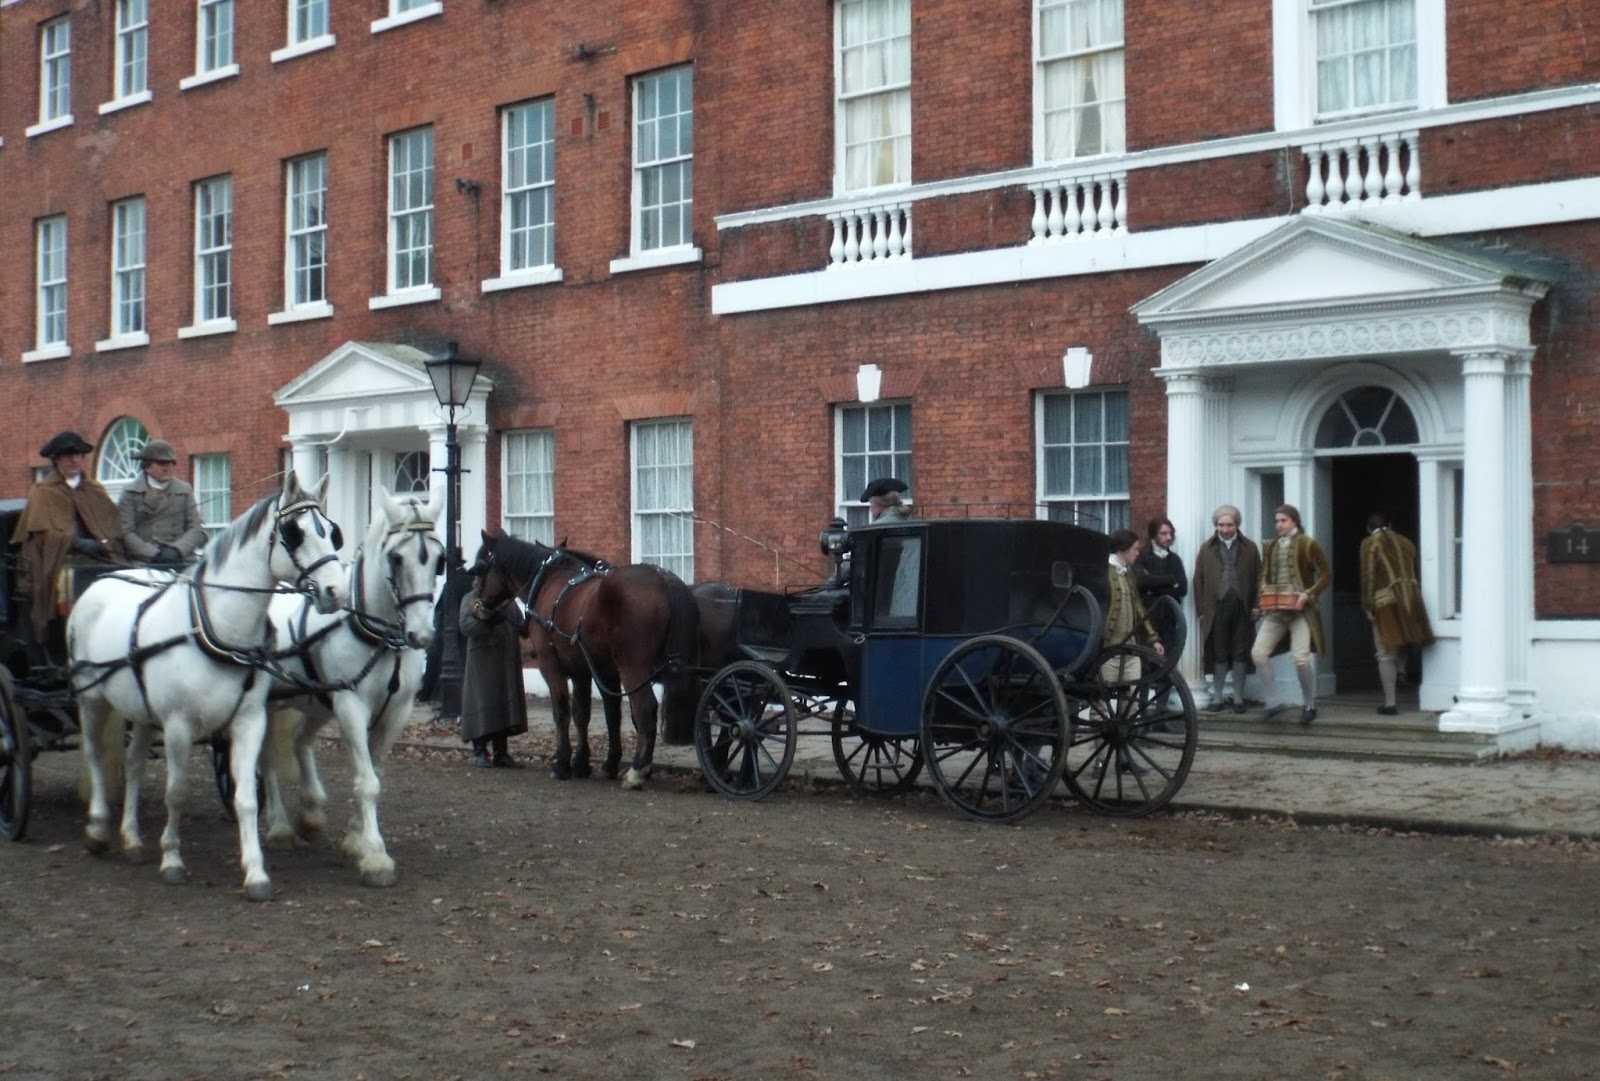 The filming of Jonathan Strange and Mr Norrell